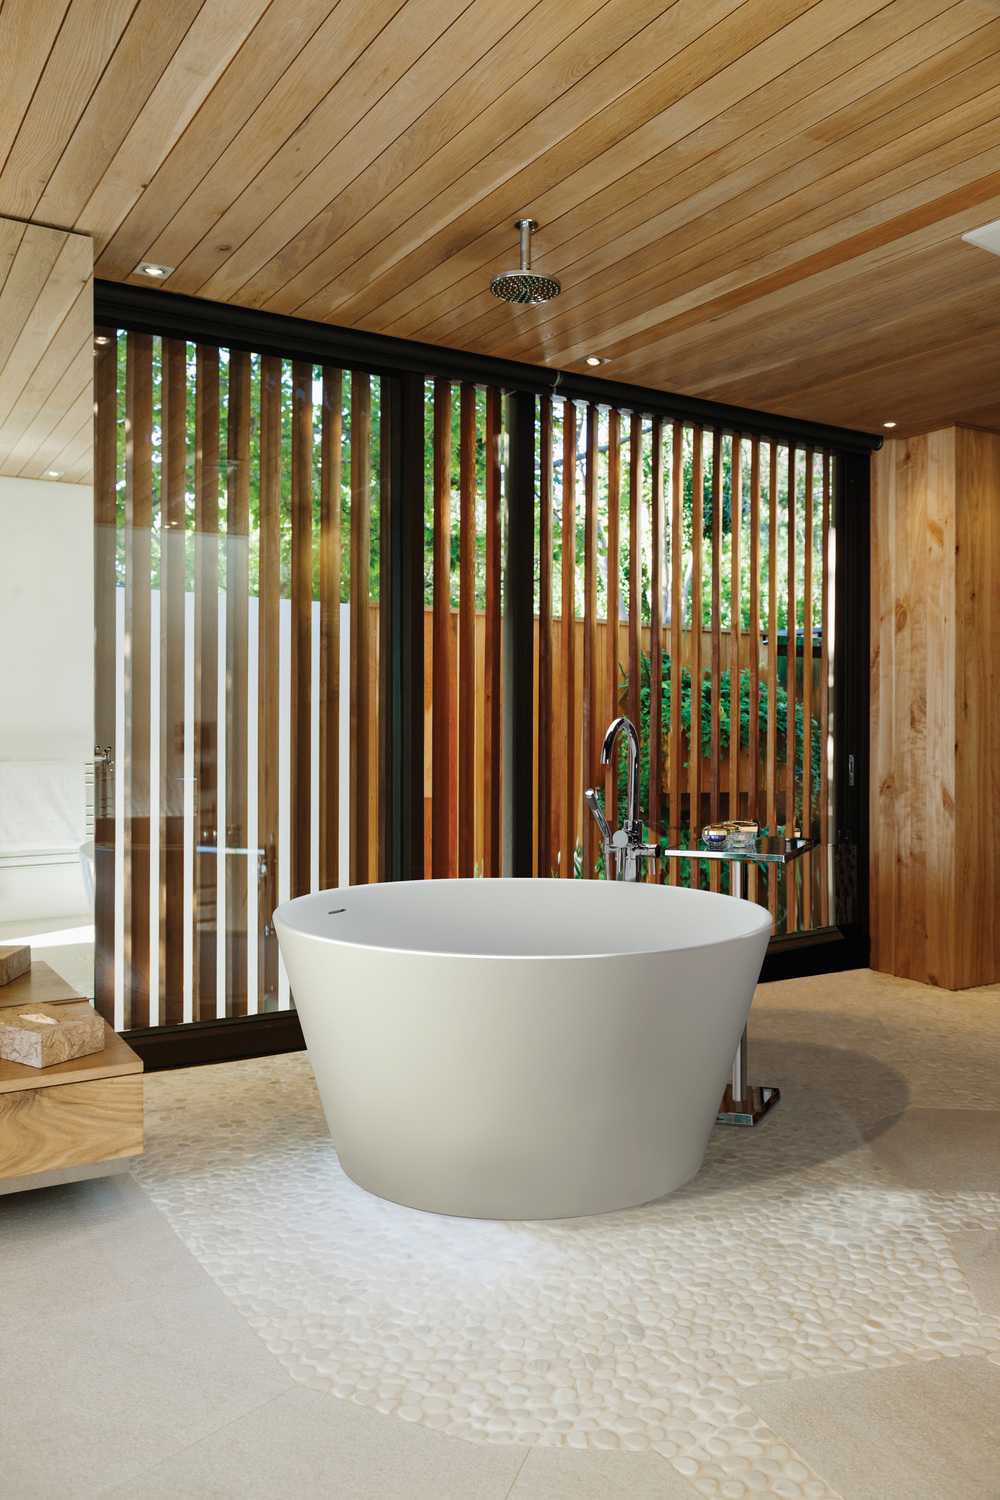 Halo Soaking Tub, Courtesy MTI Baths